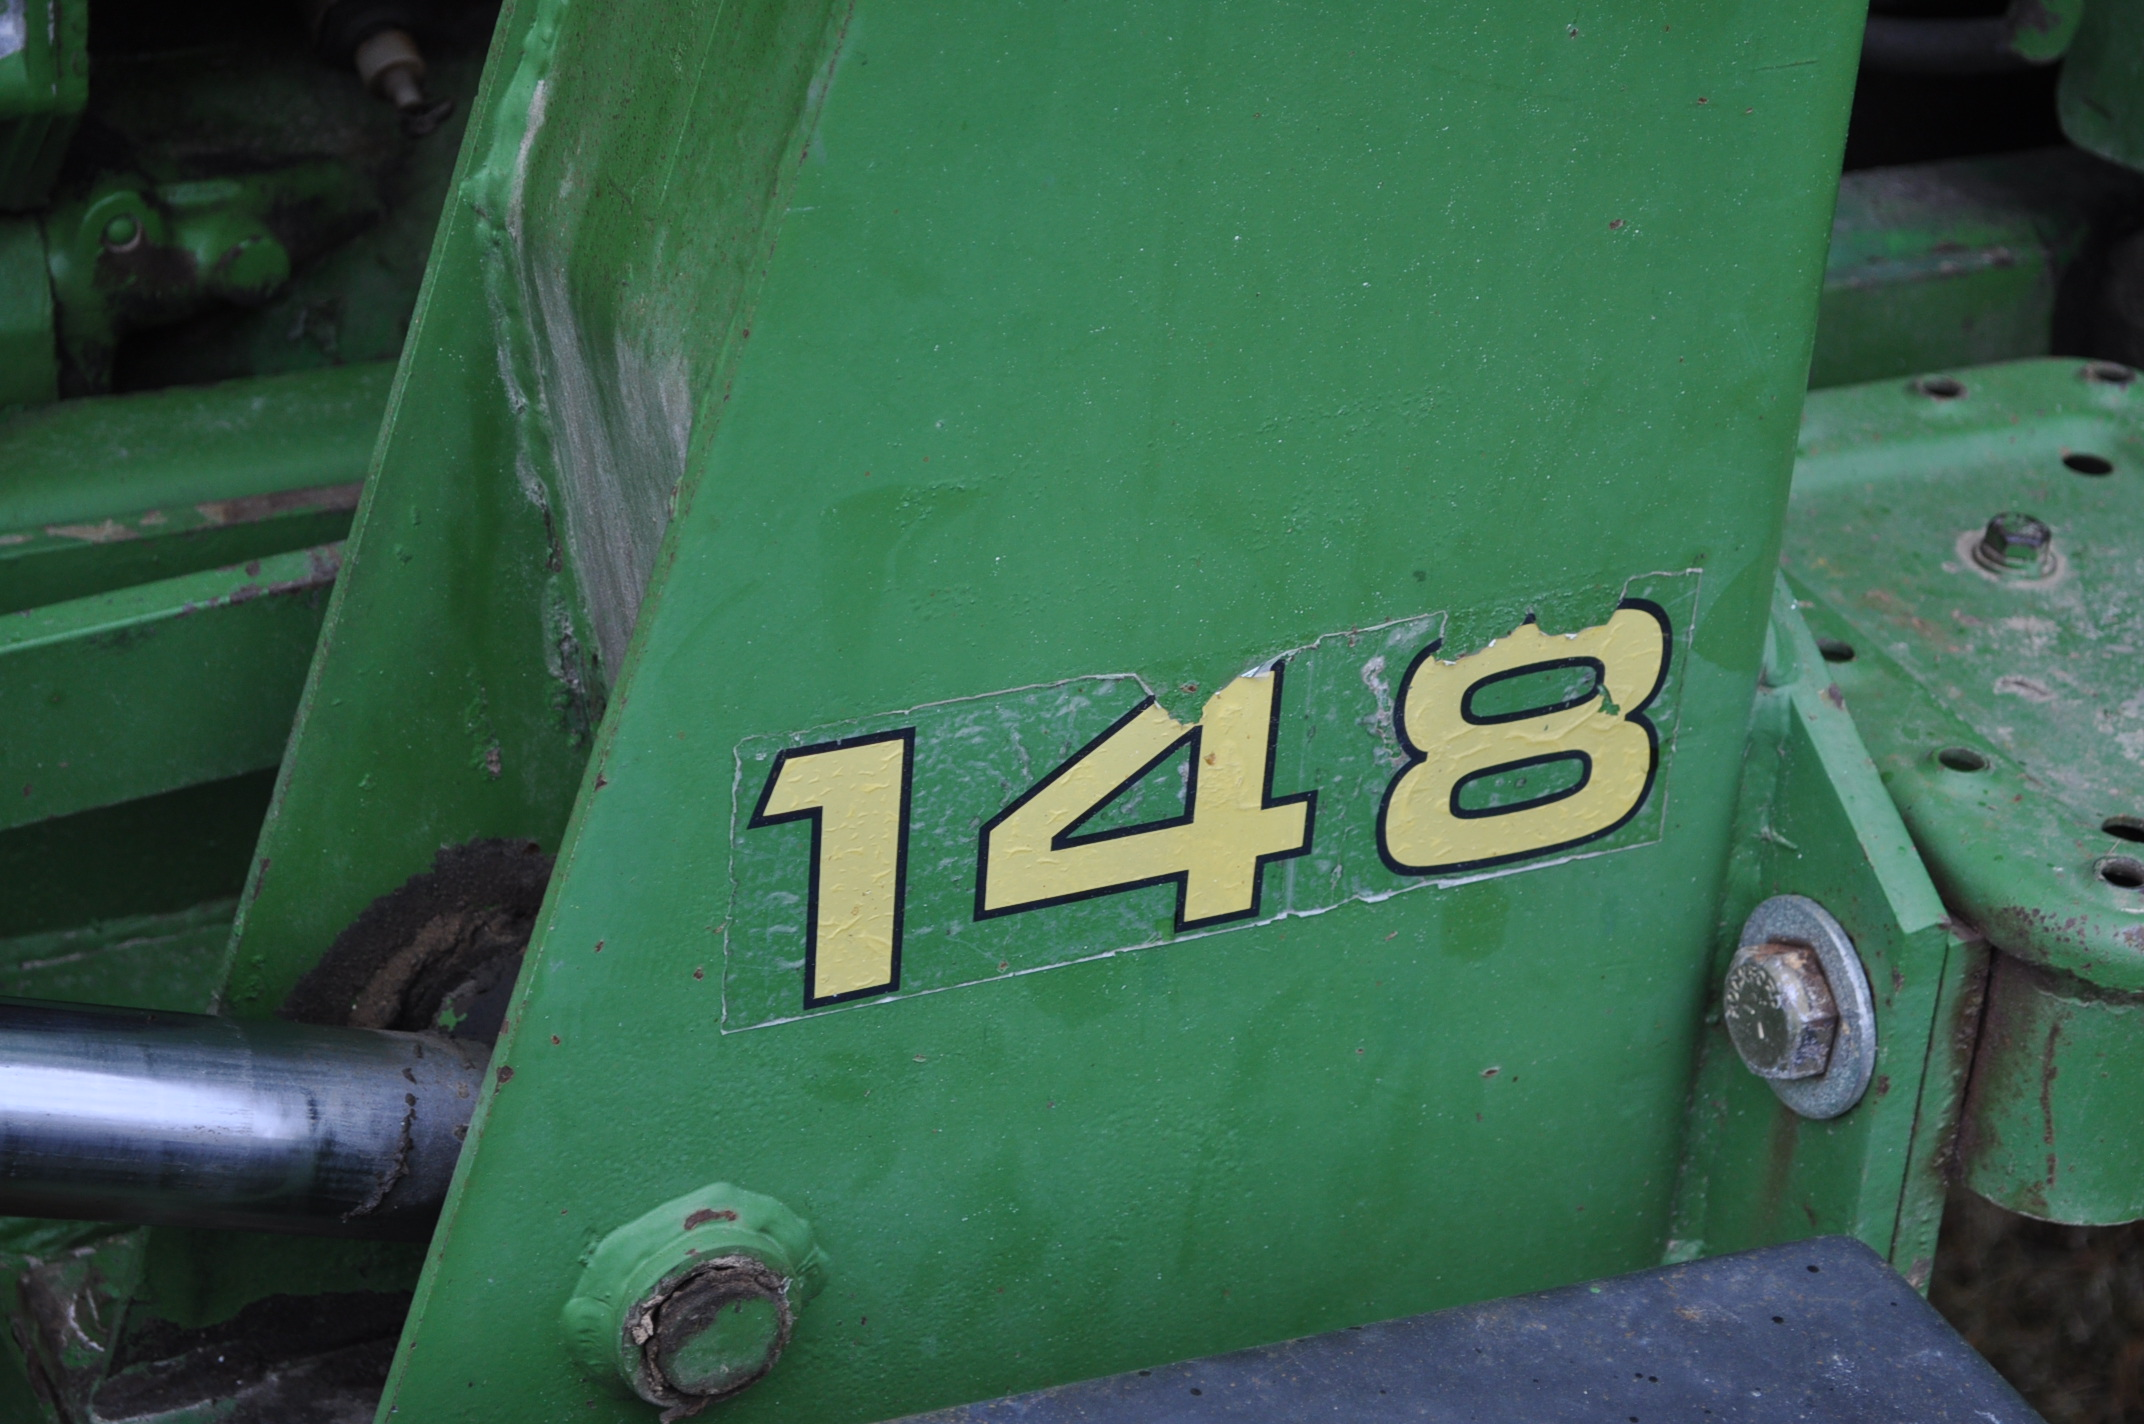 John Deere 4030 tractor, diesel, 18.4-34 rear duals, rear wts, 9.5-15 front, 4-post canopy, Syncro, - Image 18 of 26